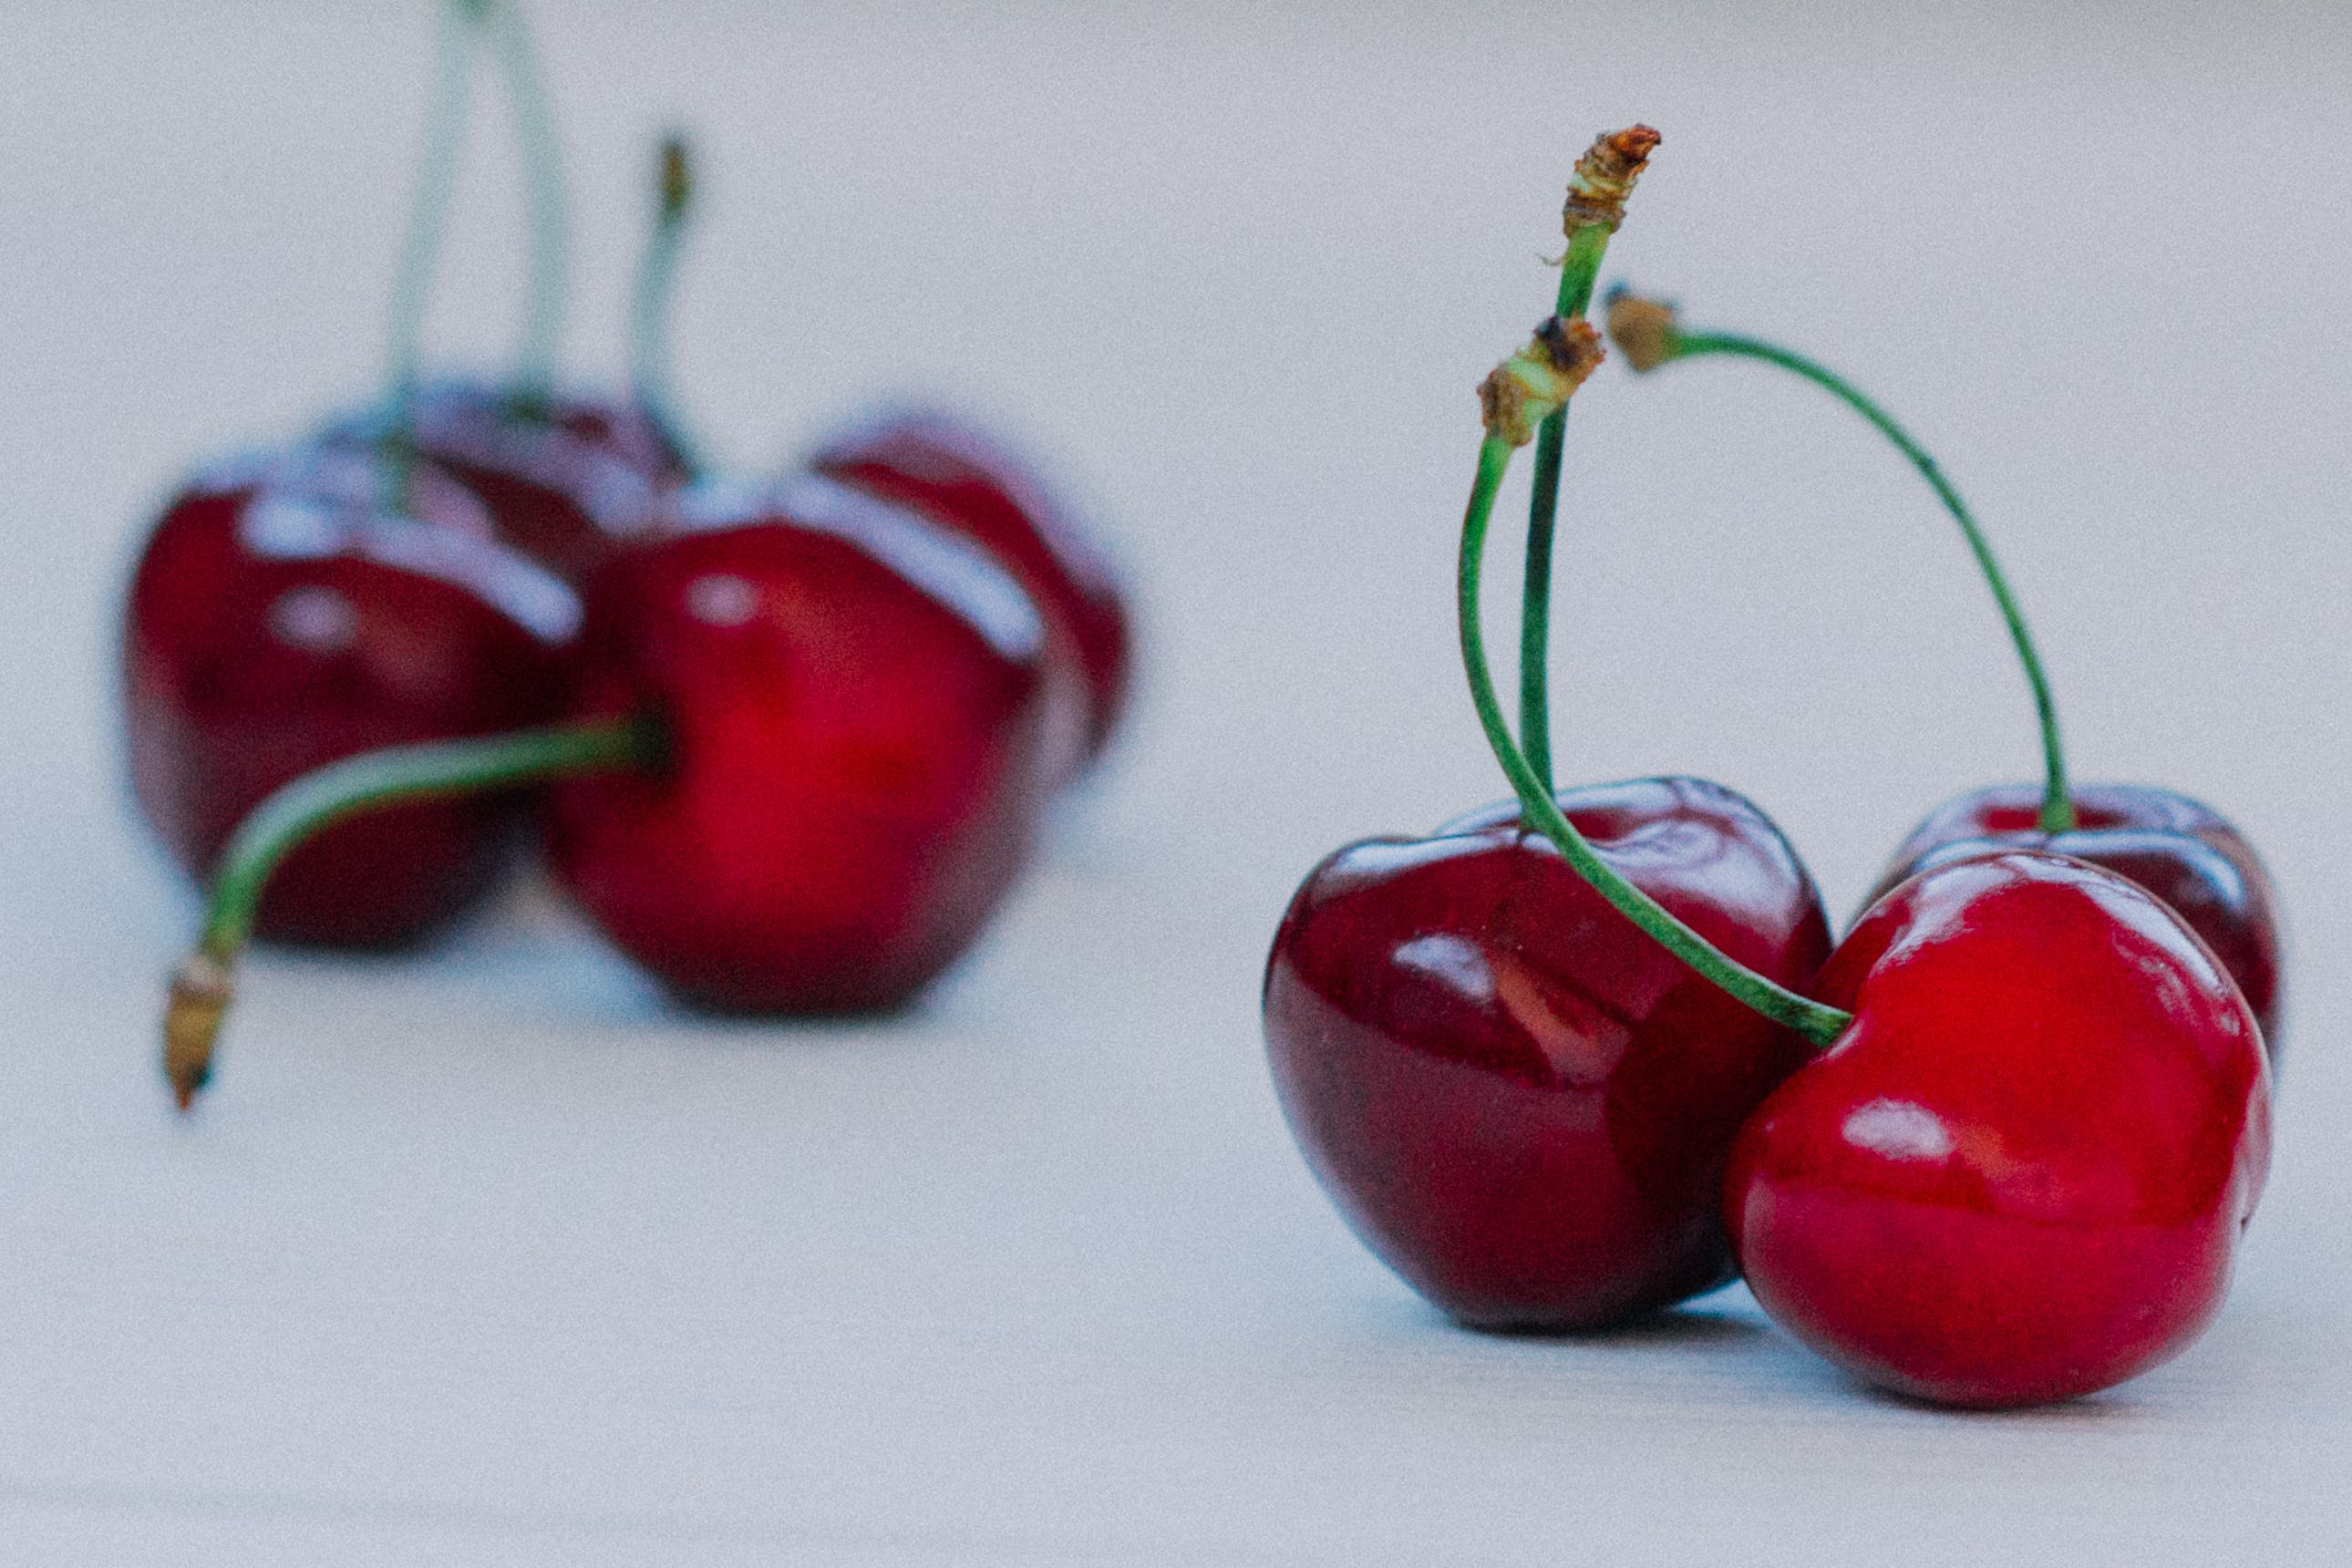 Seven Red Cherries